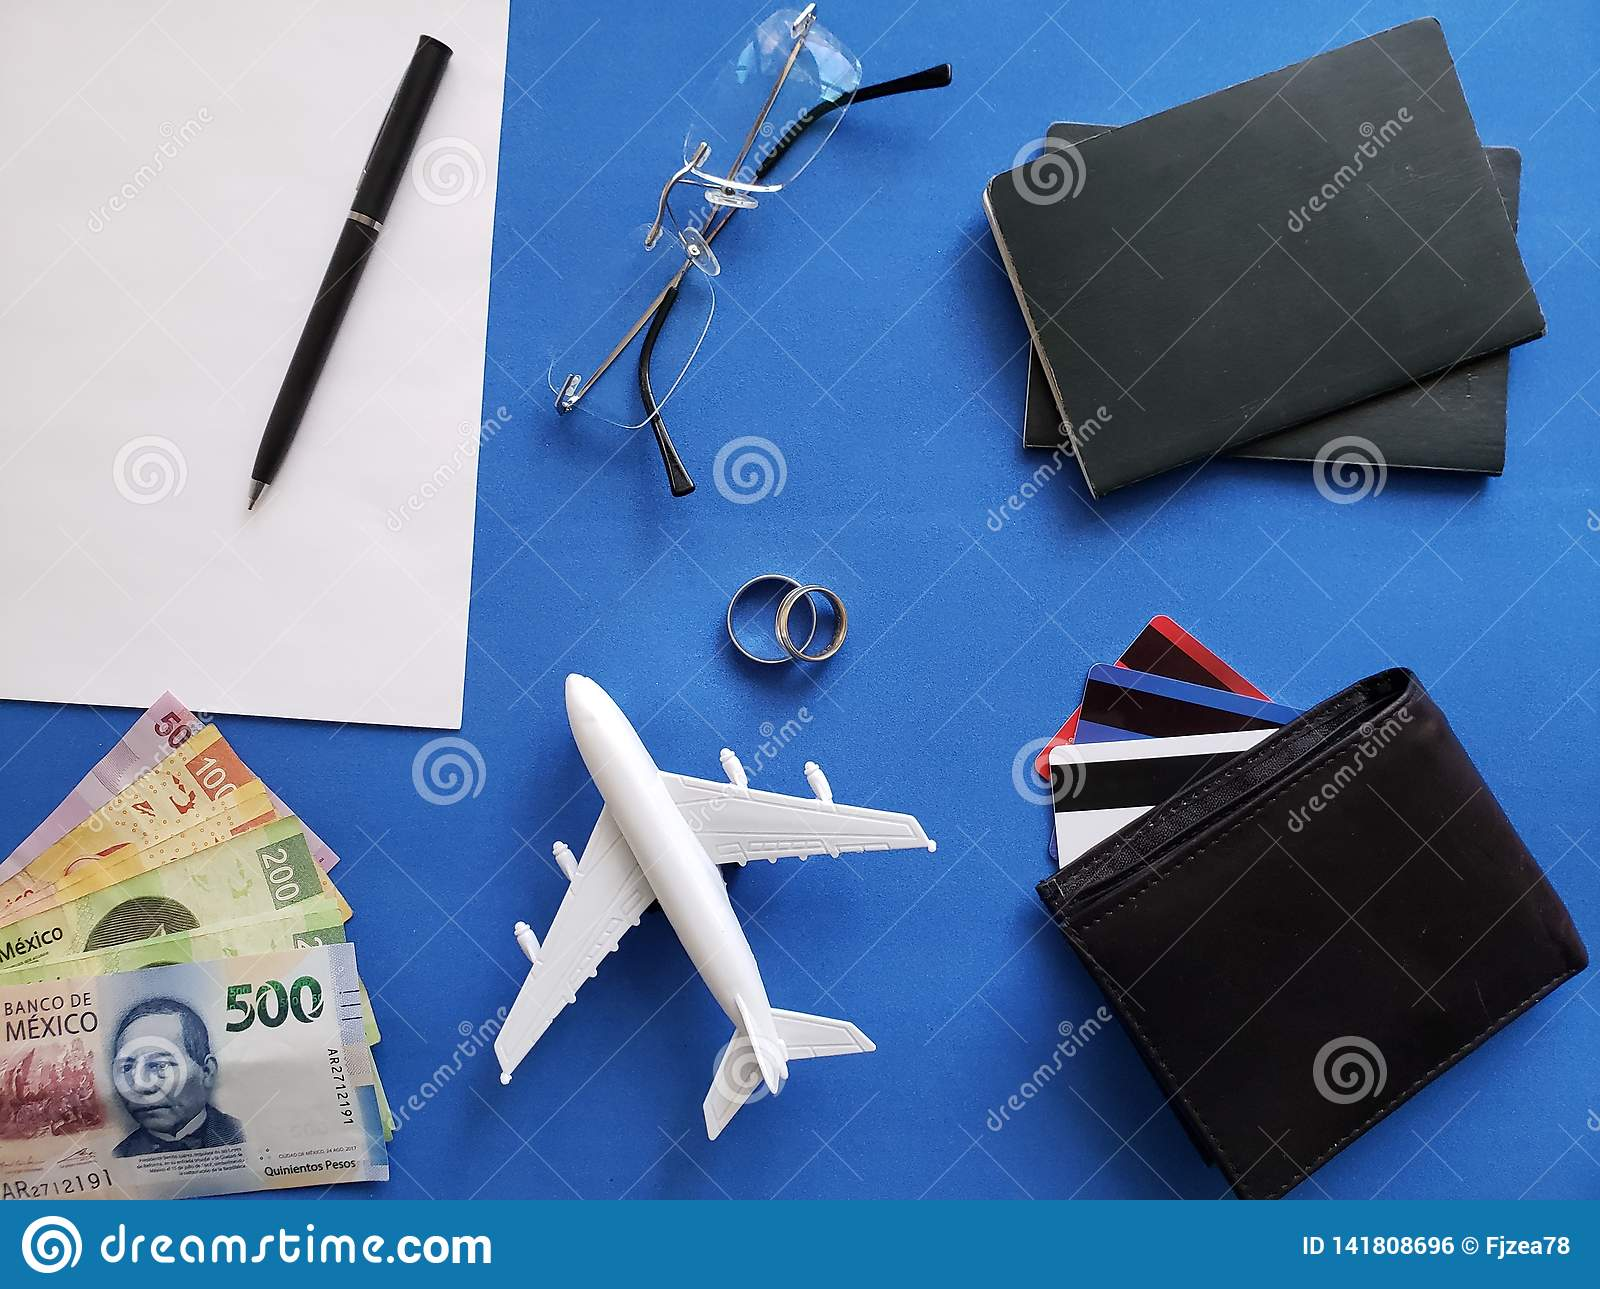 planning the honeymoon trip, rings, eyeglasses, mexican banknotes, passports, credit cards and figure of an airplane, top view